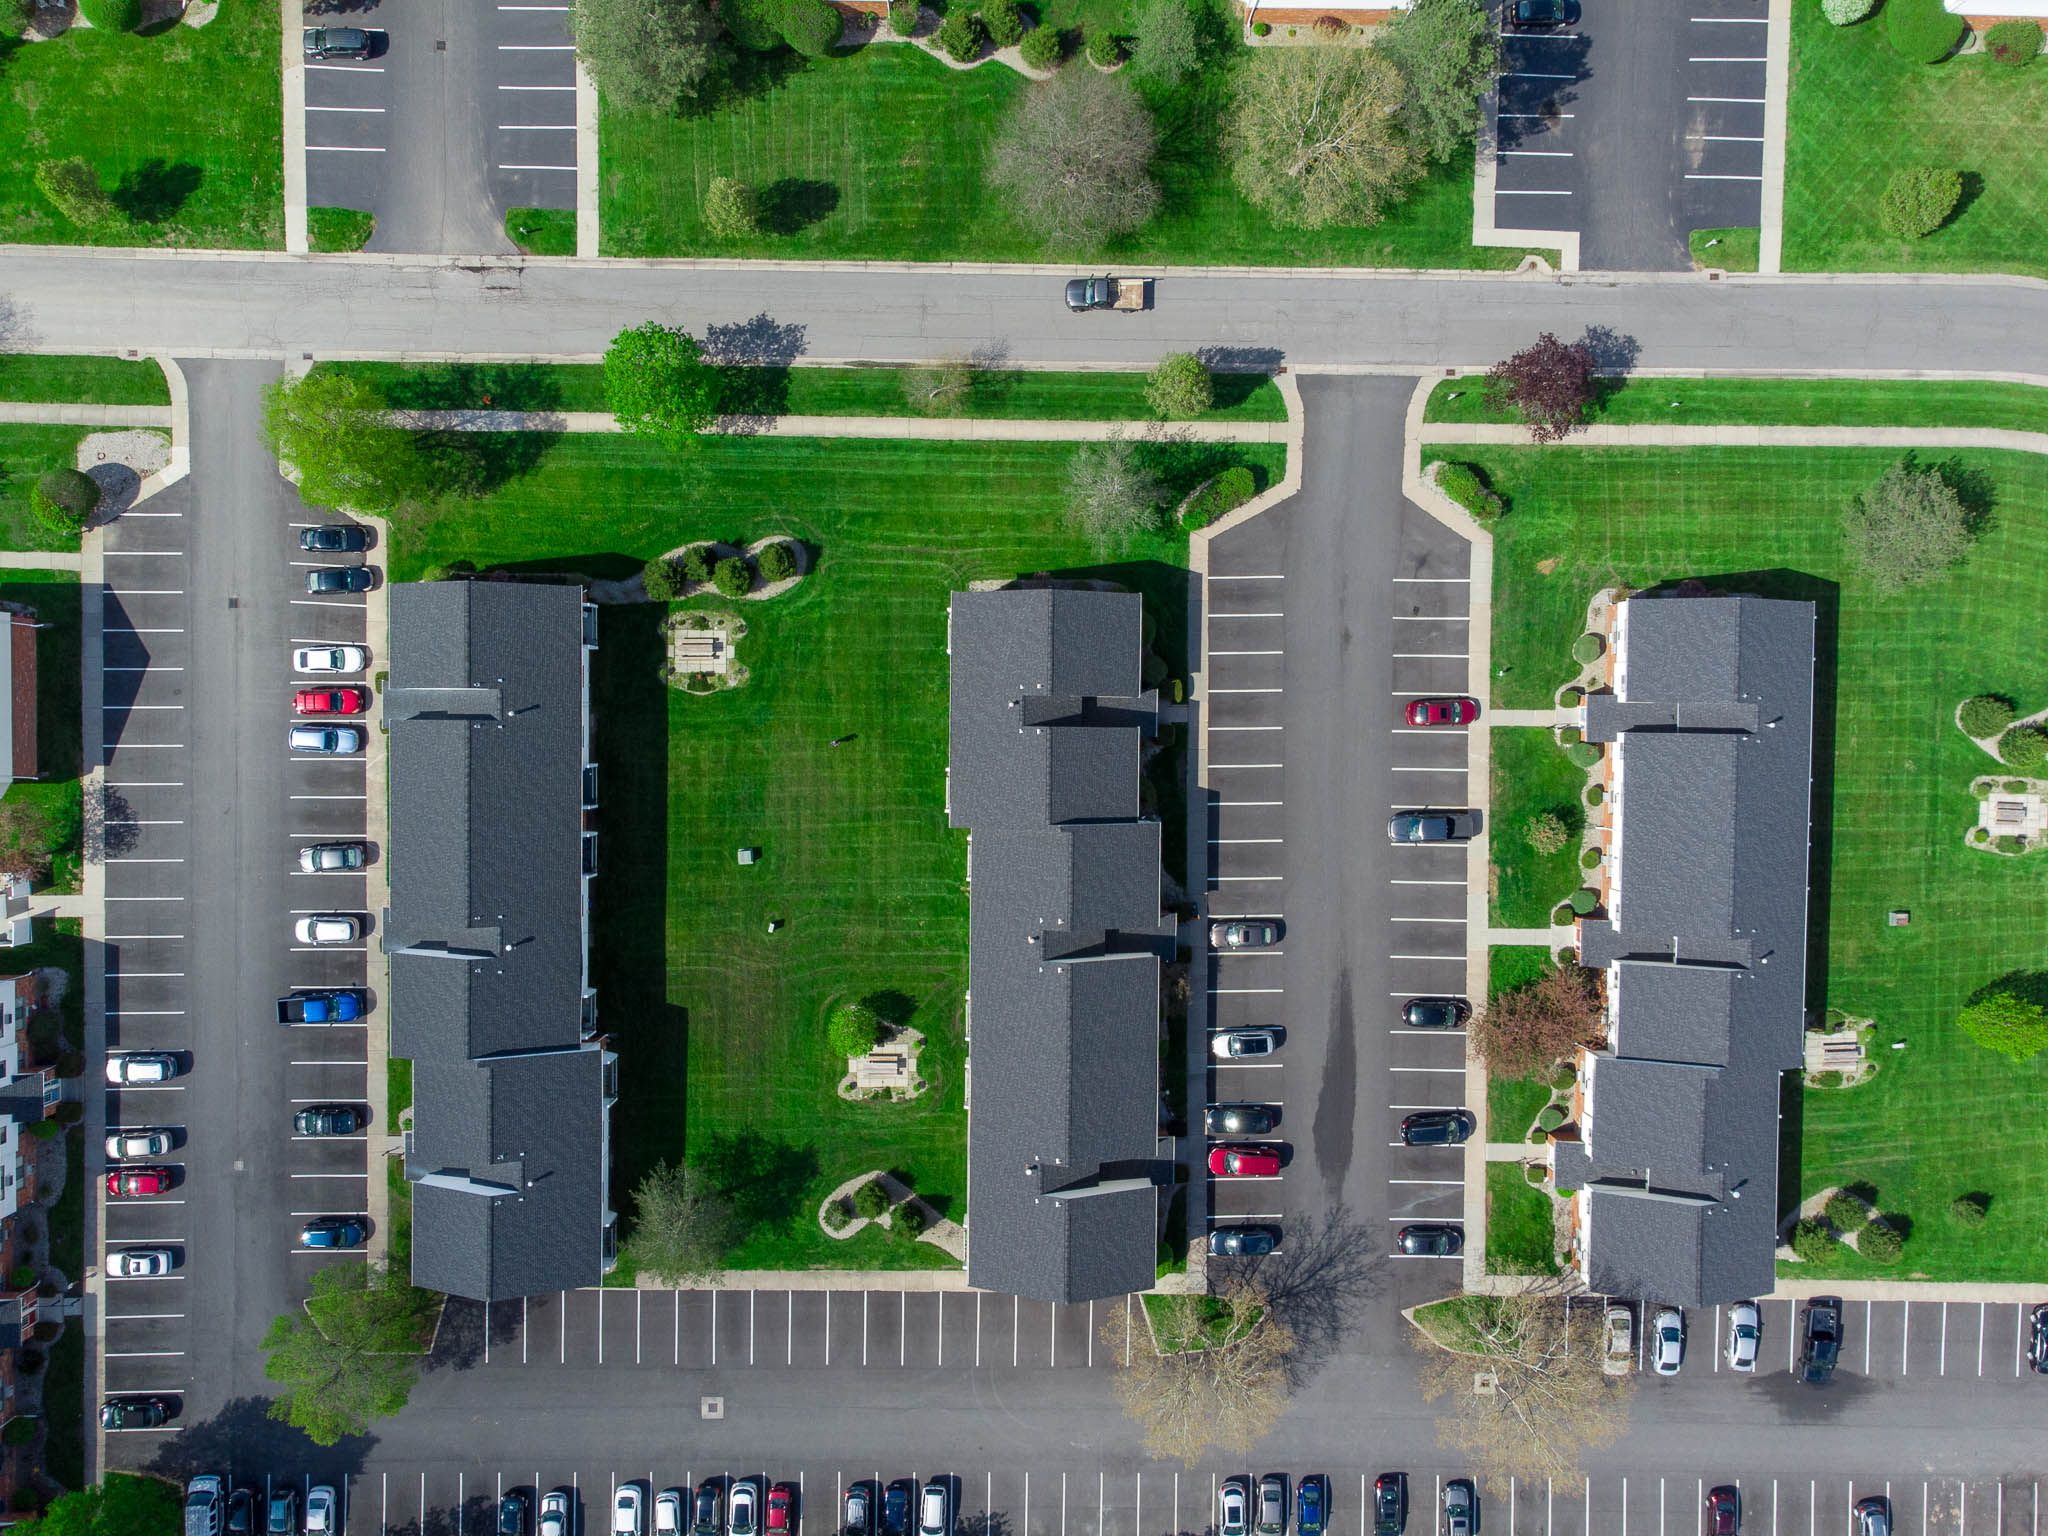 Birds Eye View at the Little Creek Apartments in Rochester, NY